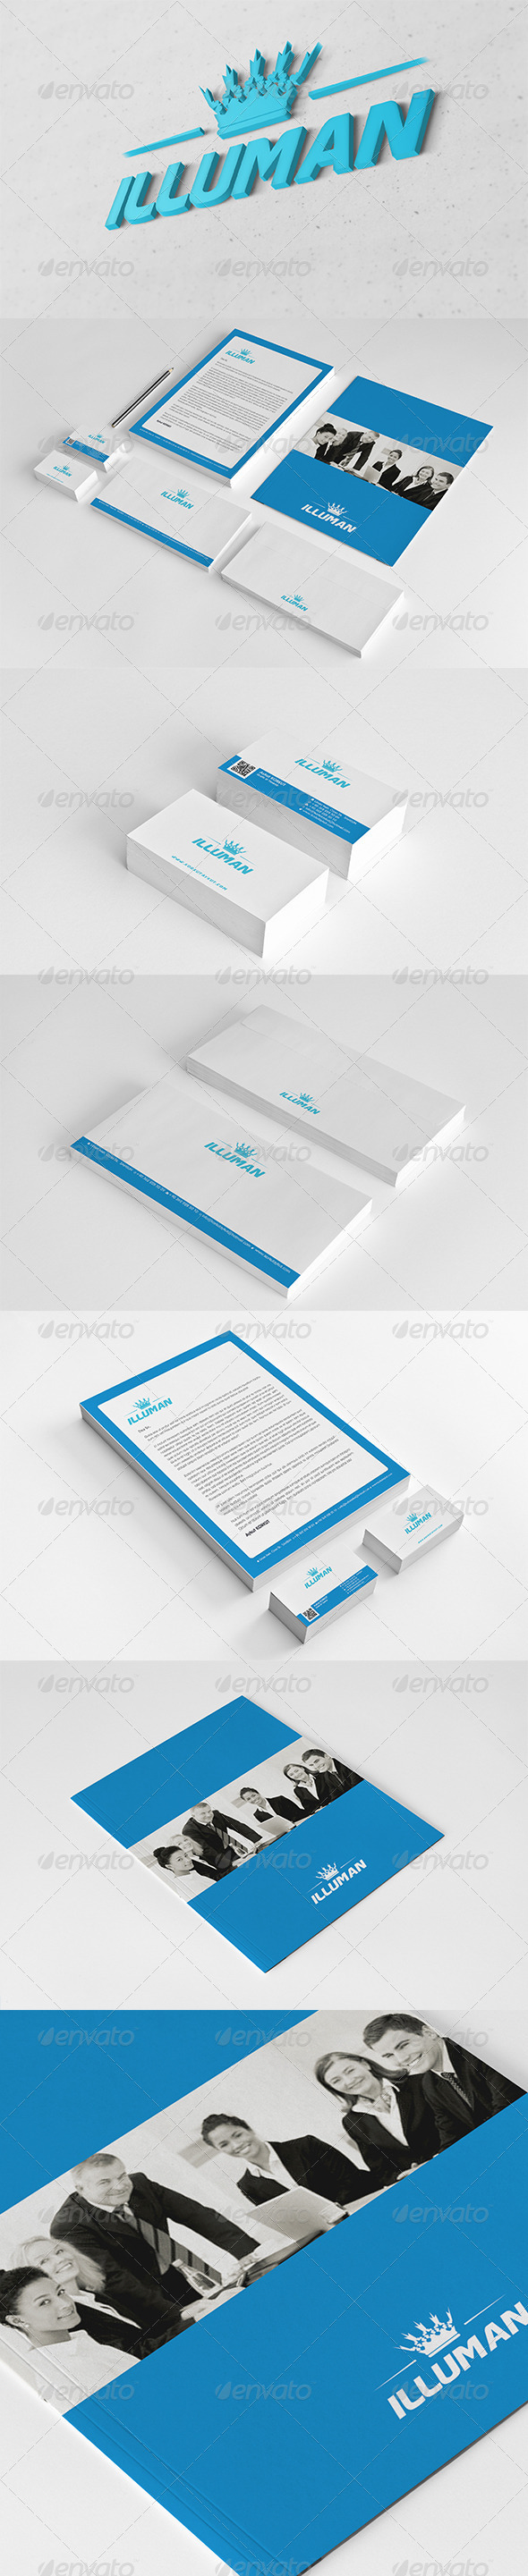 GraphicRiver Illuman Corporate Identity Package 6059394